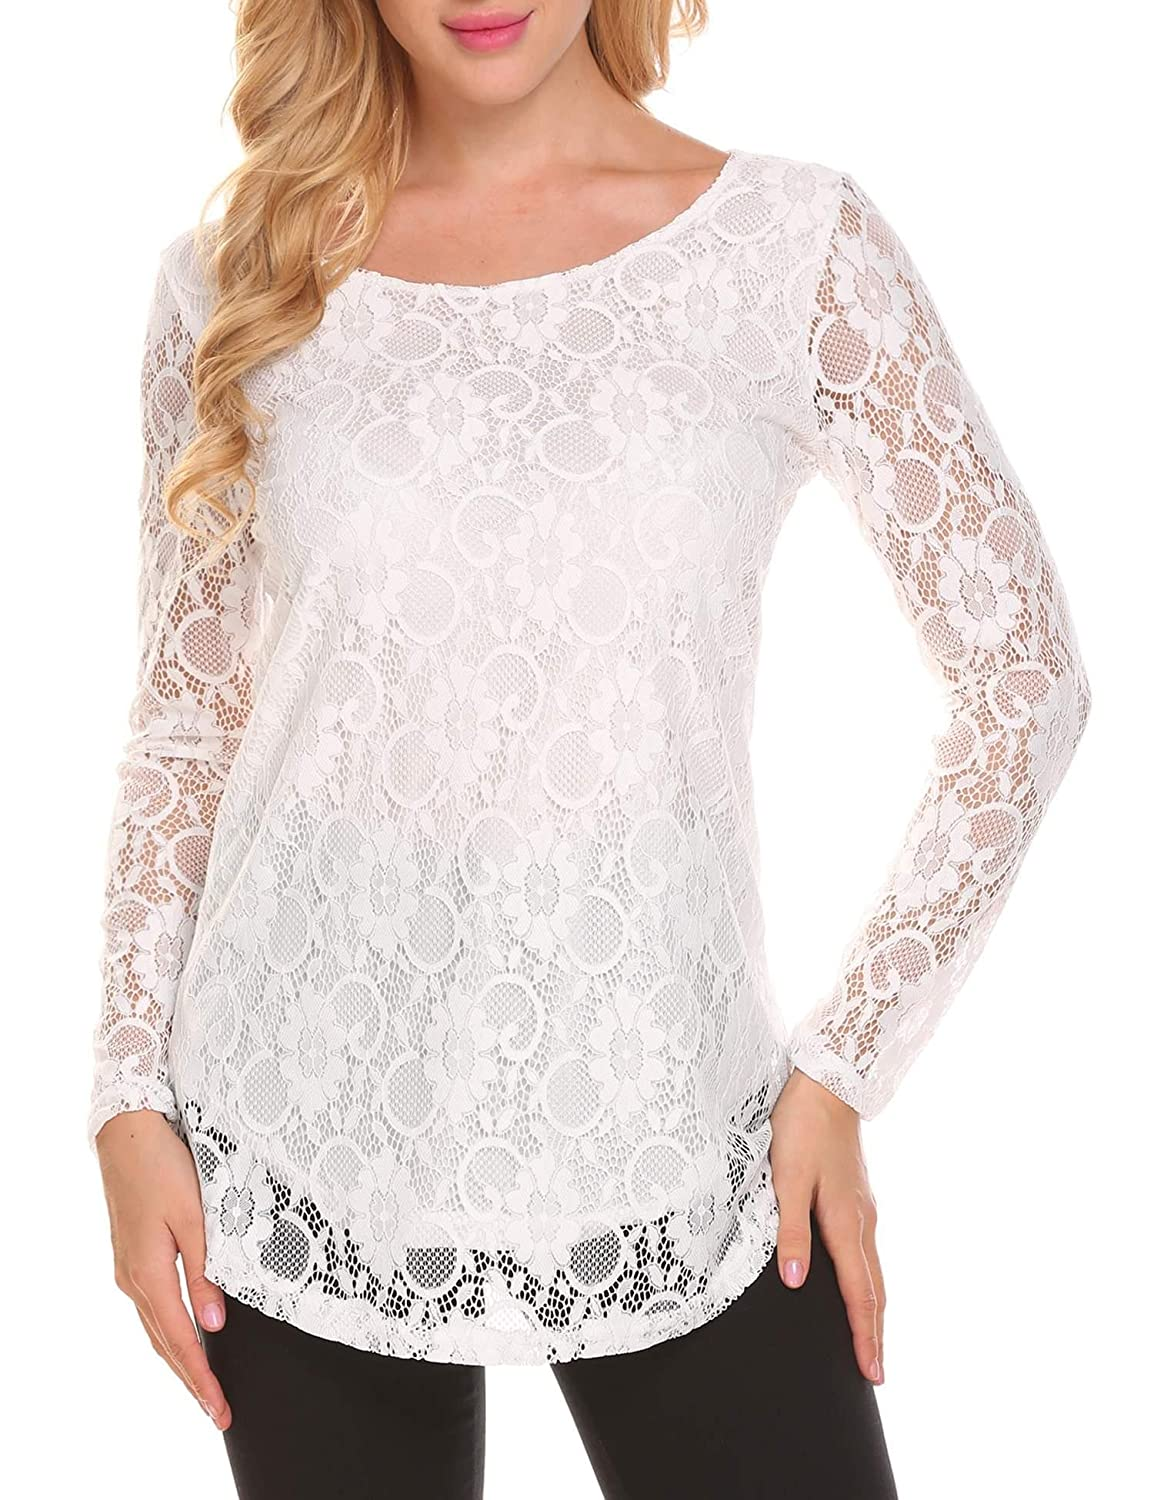 Victorian Blouses, Tops, Shirts, Sweaters SoTeer Womens Lace Casual Tops Short Sleeve/Long Sleeve Boho Elegant Casual Loose Blouse Shirts $25.99 AT vintagedancer.com